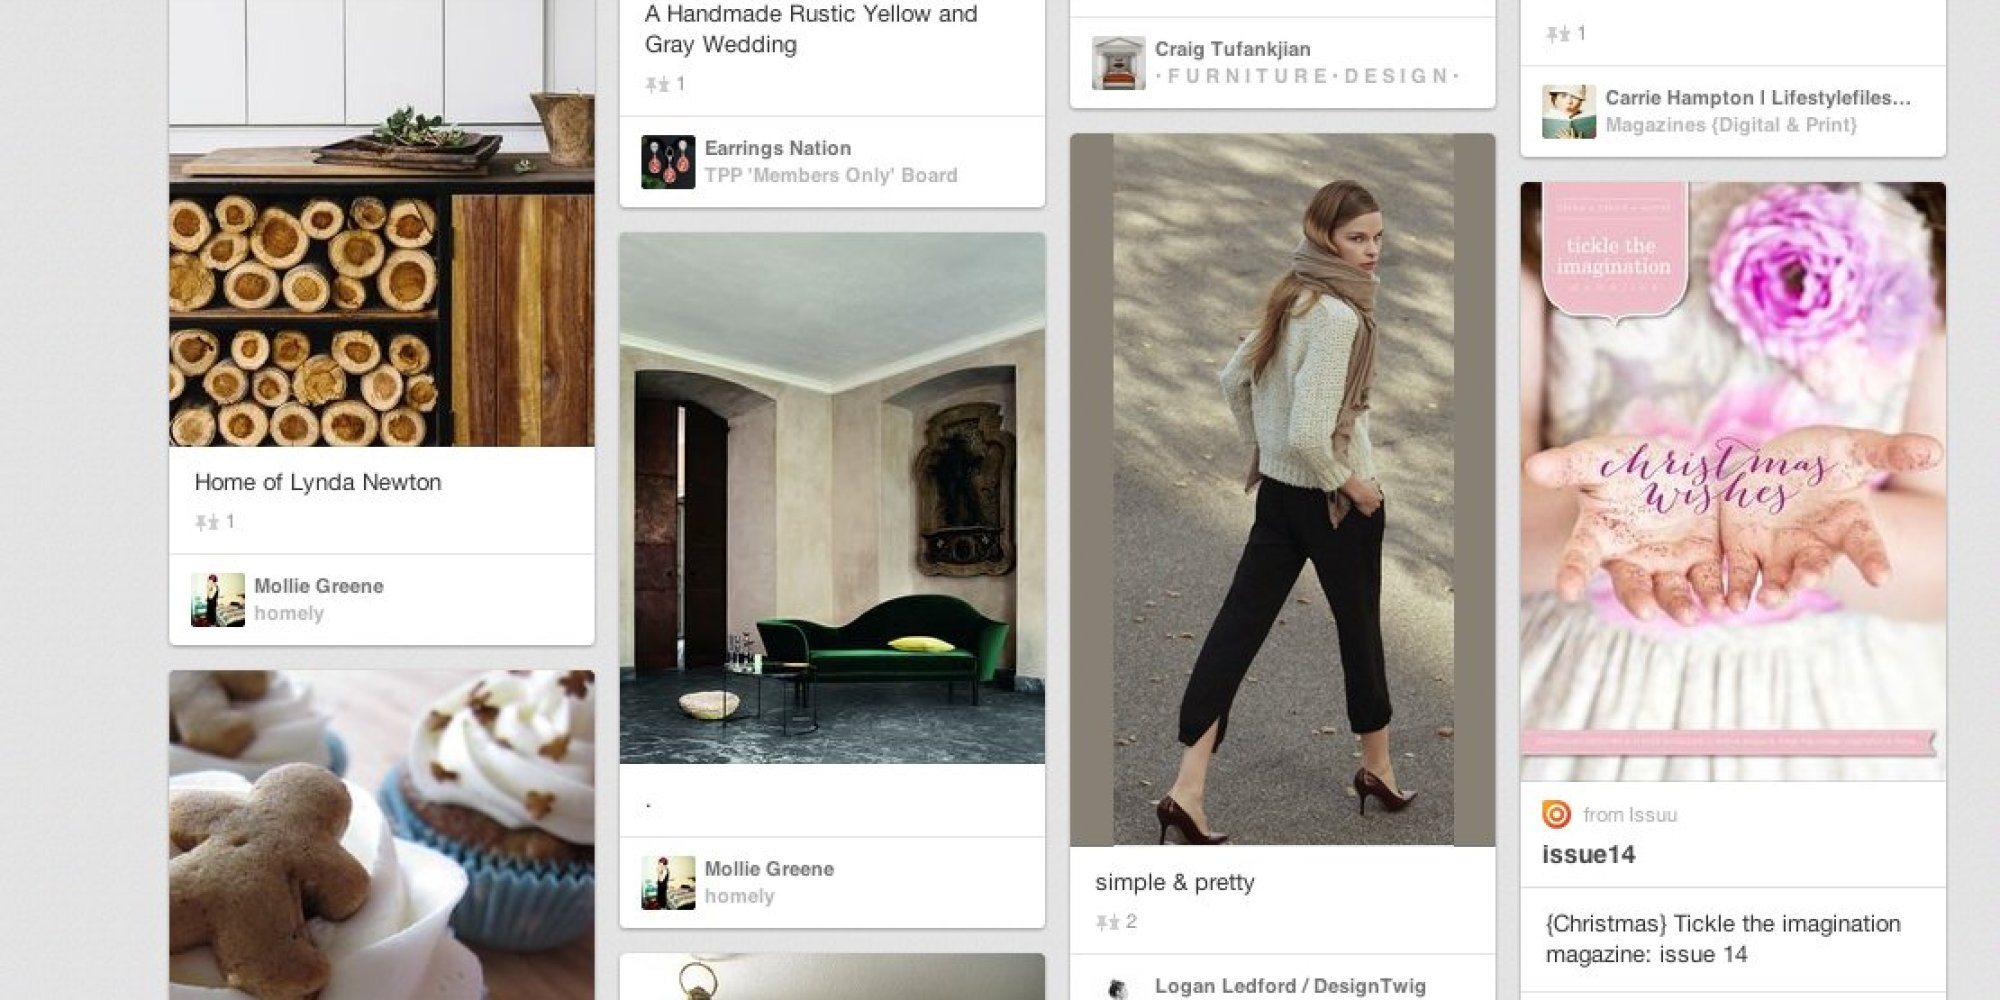 8 Pinterest Ideas That Exist To Make You Feel Bad About Your Life